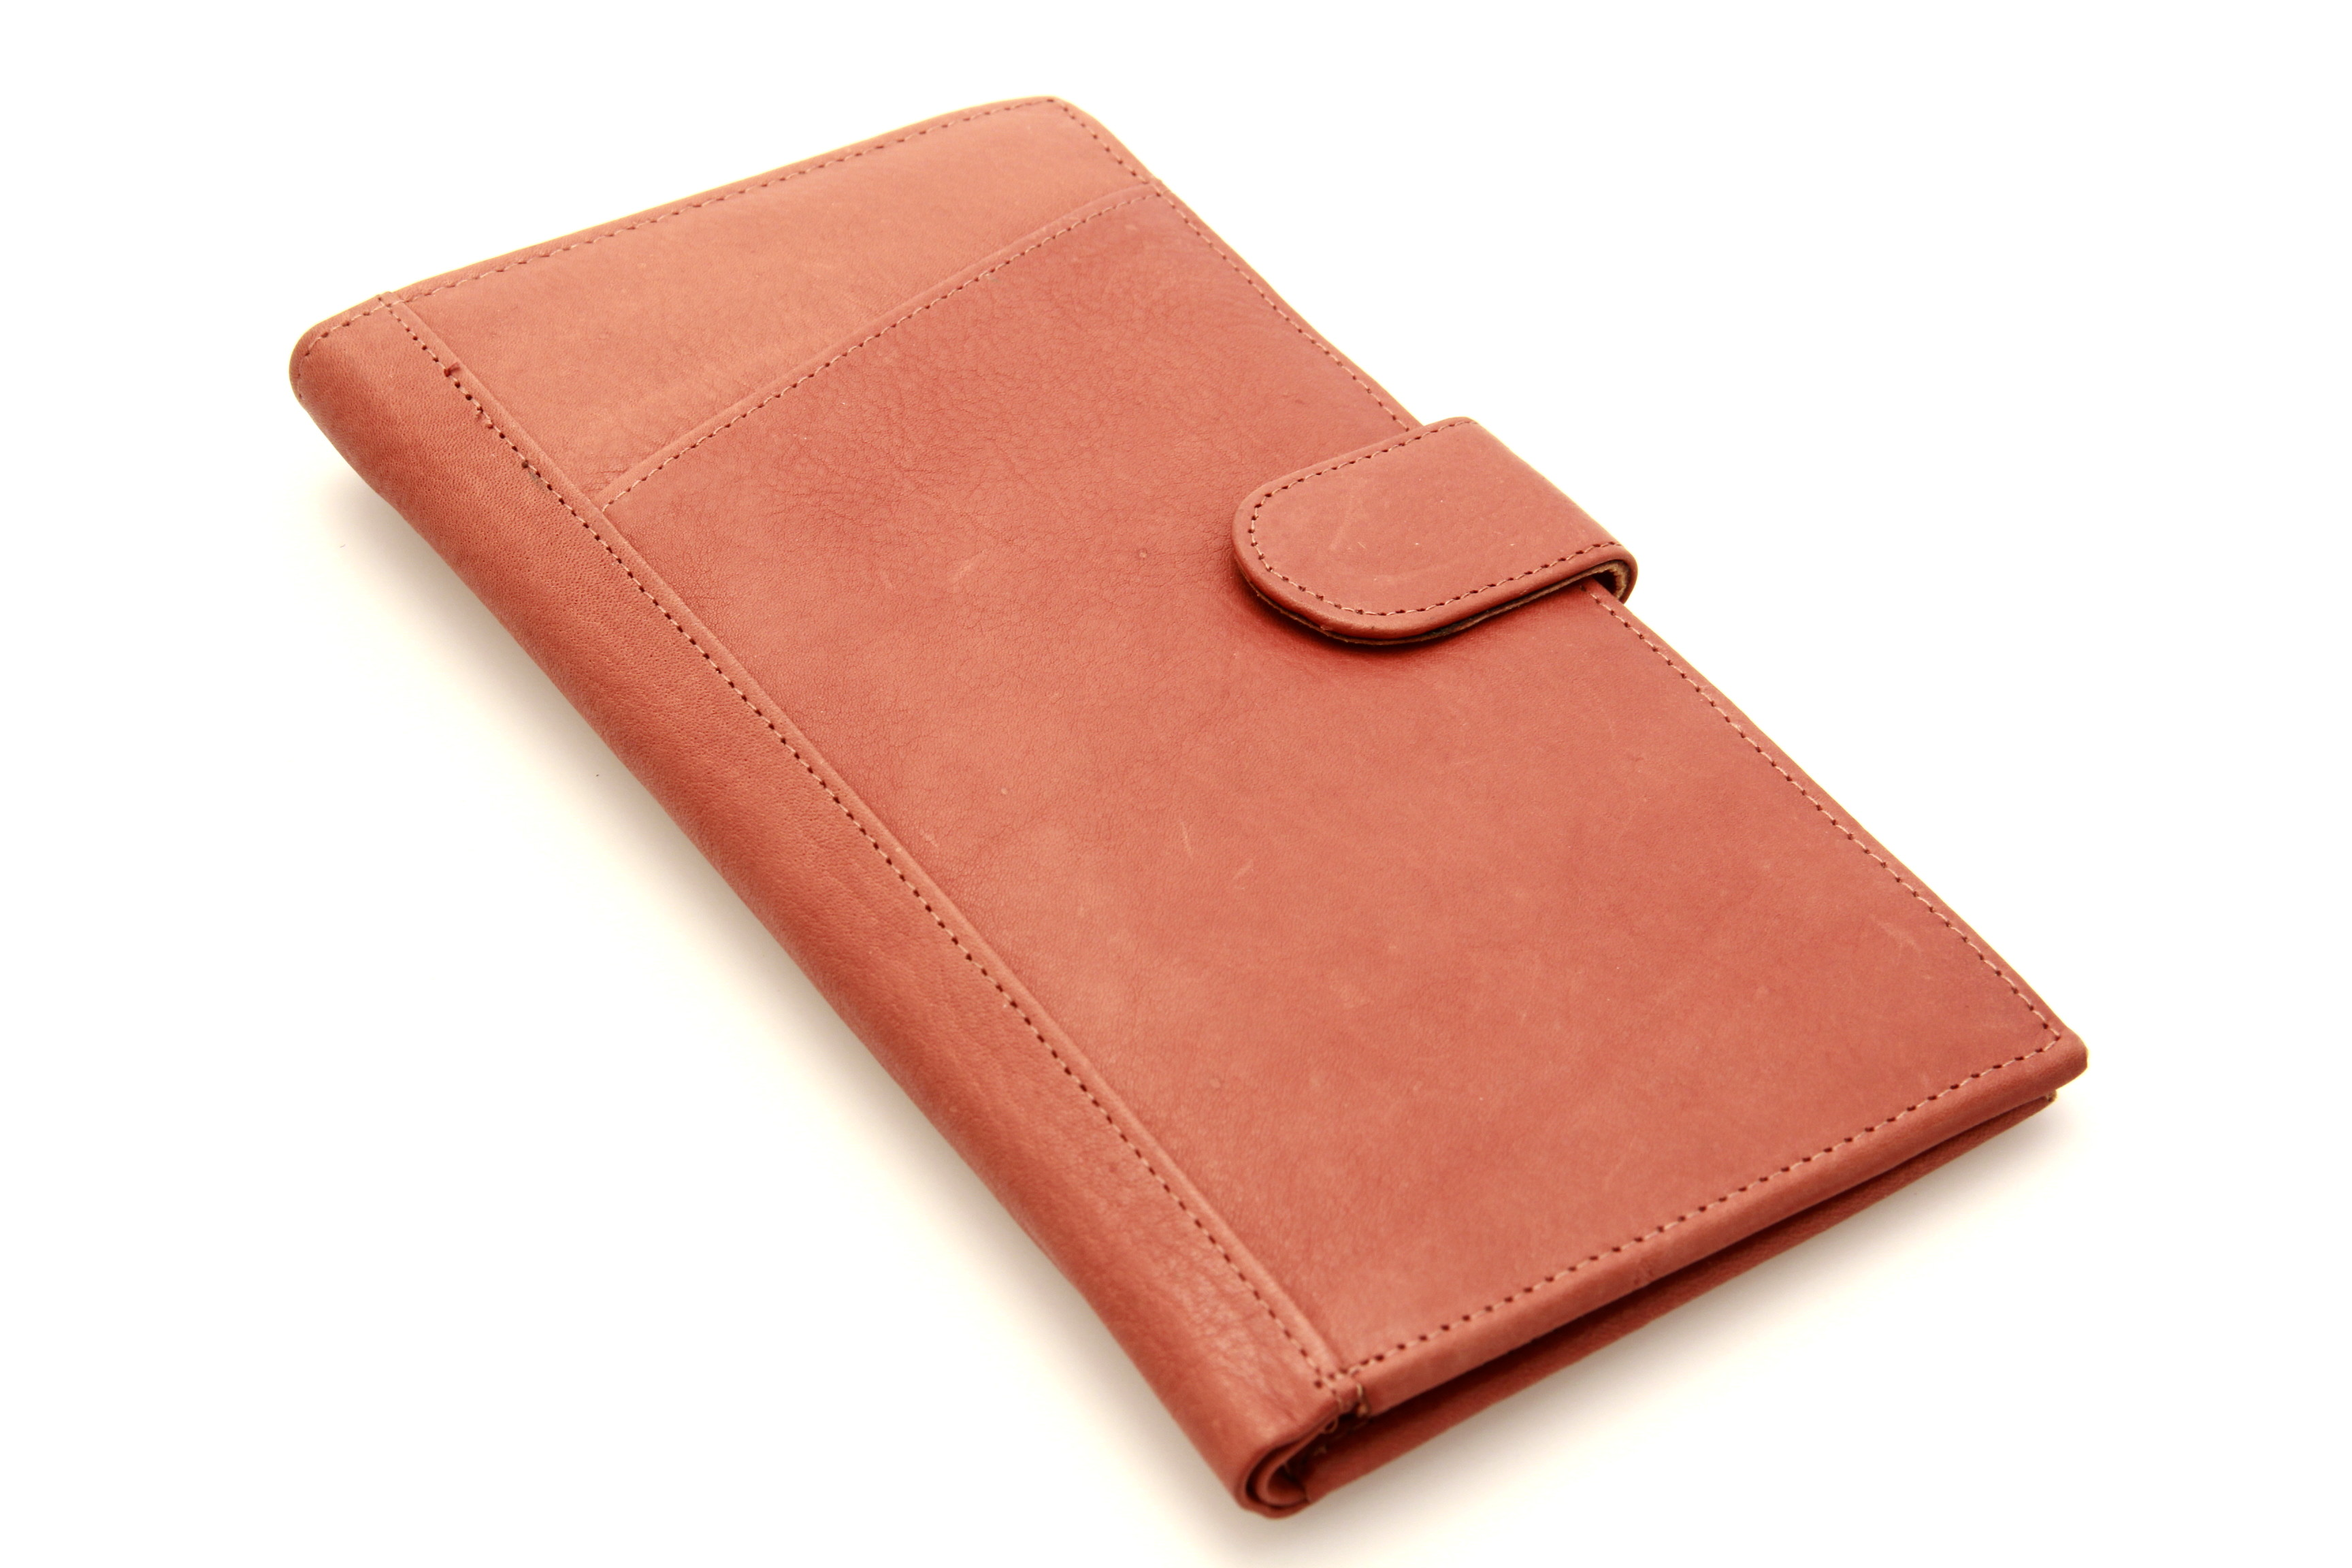 Travel Wallets Stay organized so you won't forget a thing. These leather passport wallets do the legwork so you can relax and enjoy the ride.